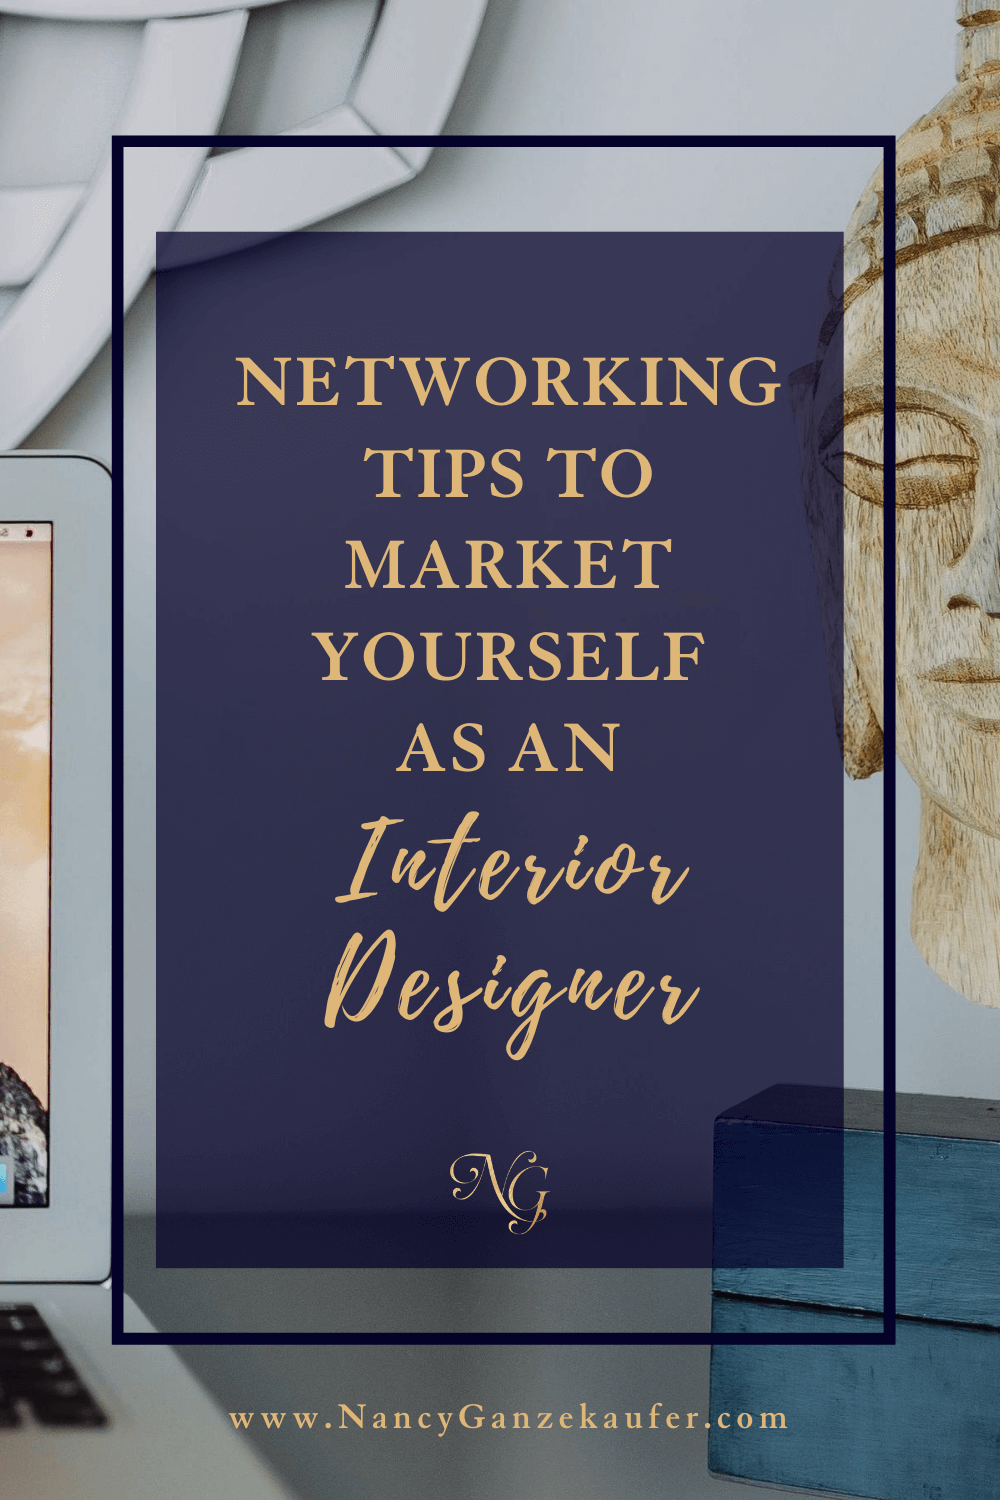 Networking tips to market yourself as an interior designer